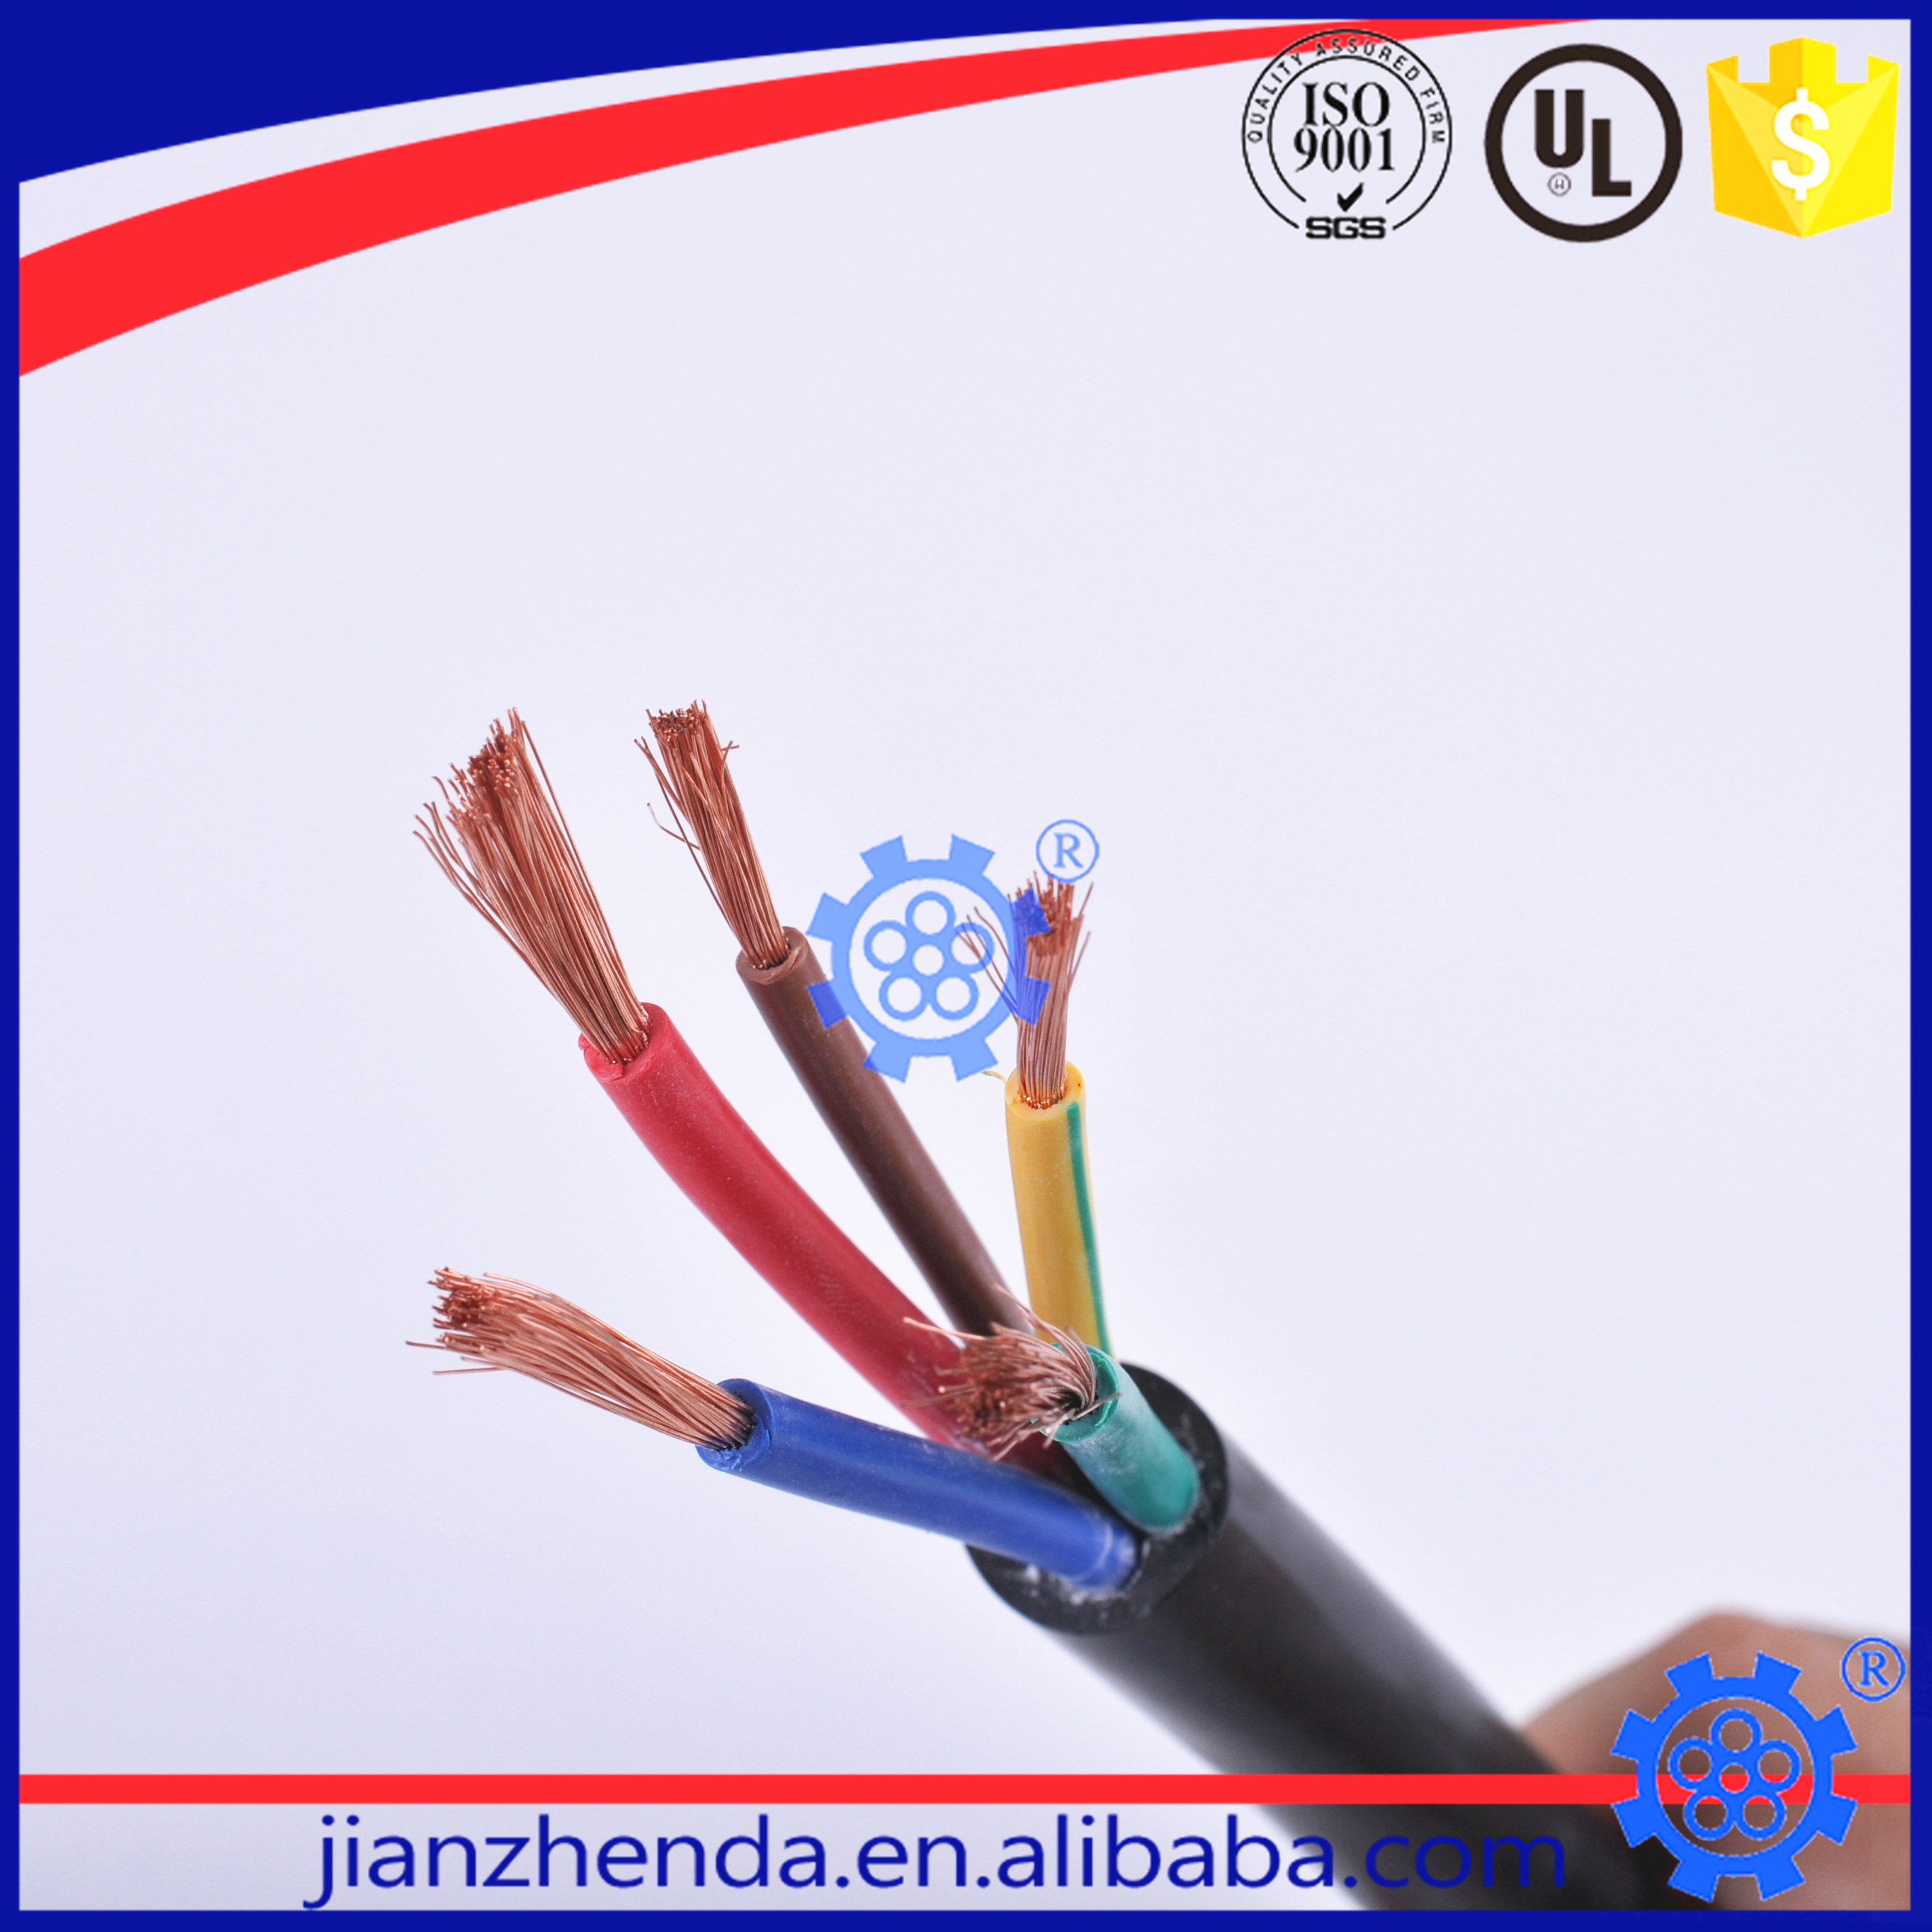 Cable buy electric cable 2 5 sq mm cable 1 5 sqmm wire product on - 2 Core 2 5 Sq Mm Cable 2 Core 2 5 Sq Mm Cable Suppliers And Manufacturers At Alibaba Com